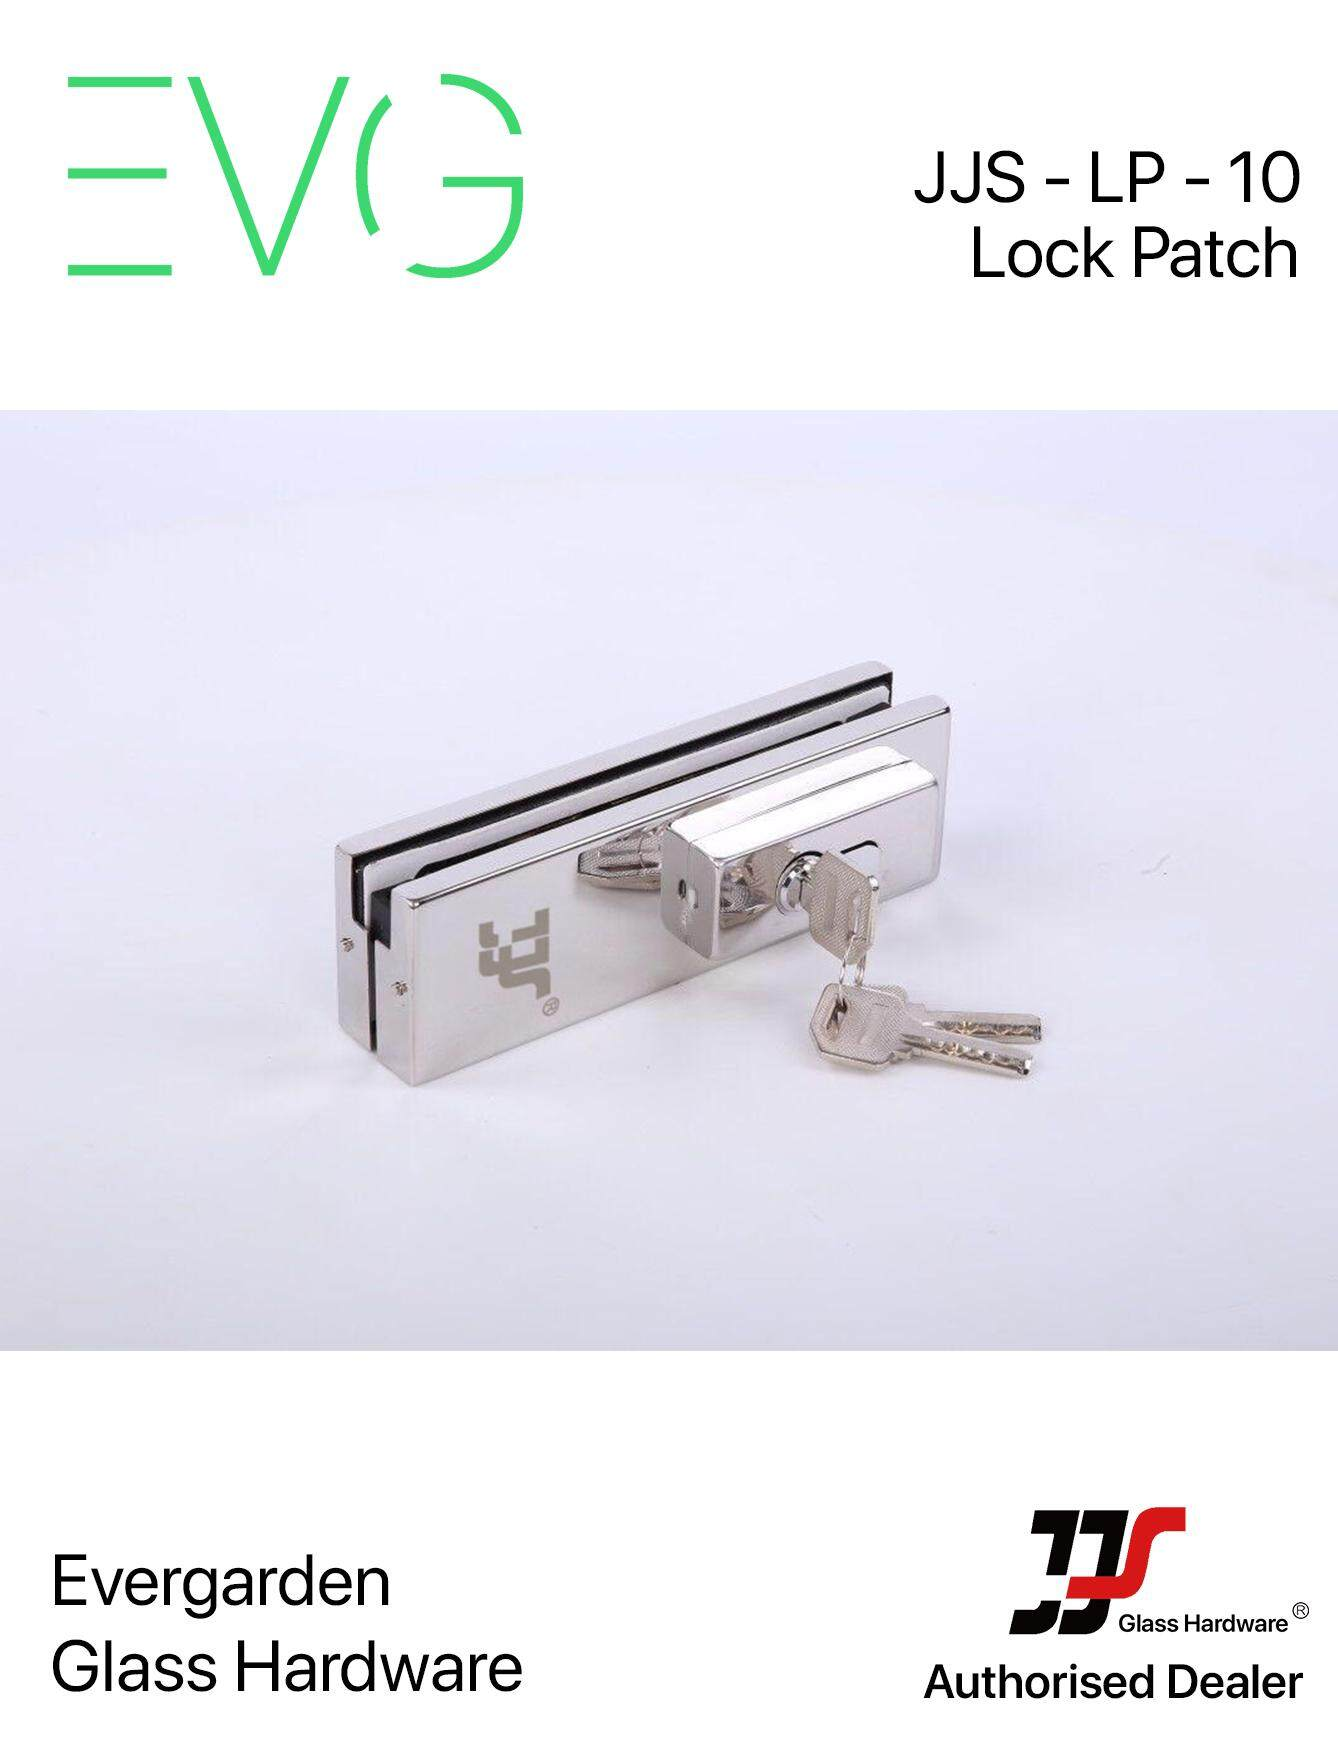 Patch Fitting [Lock Patch] (JJS - LP - 10)